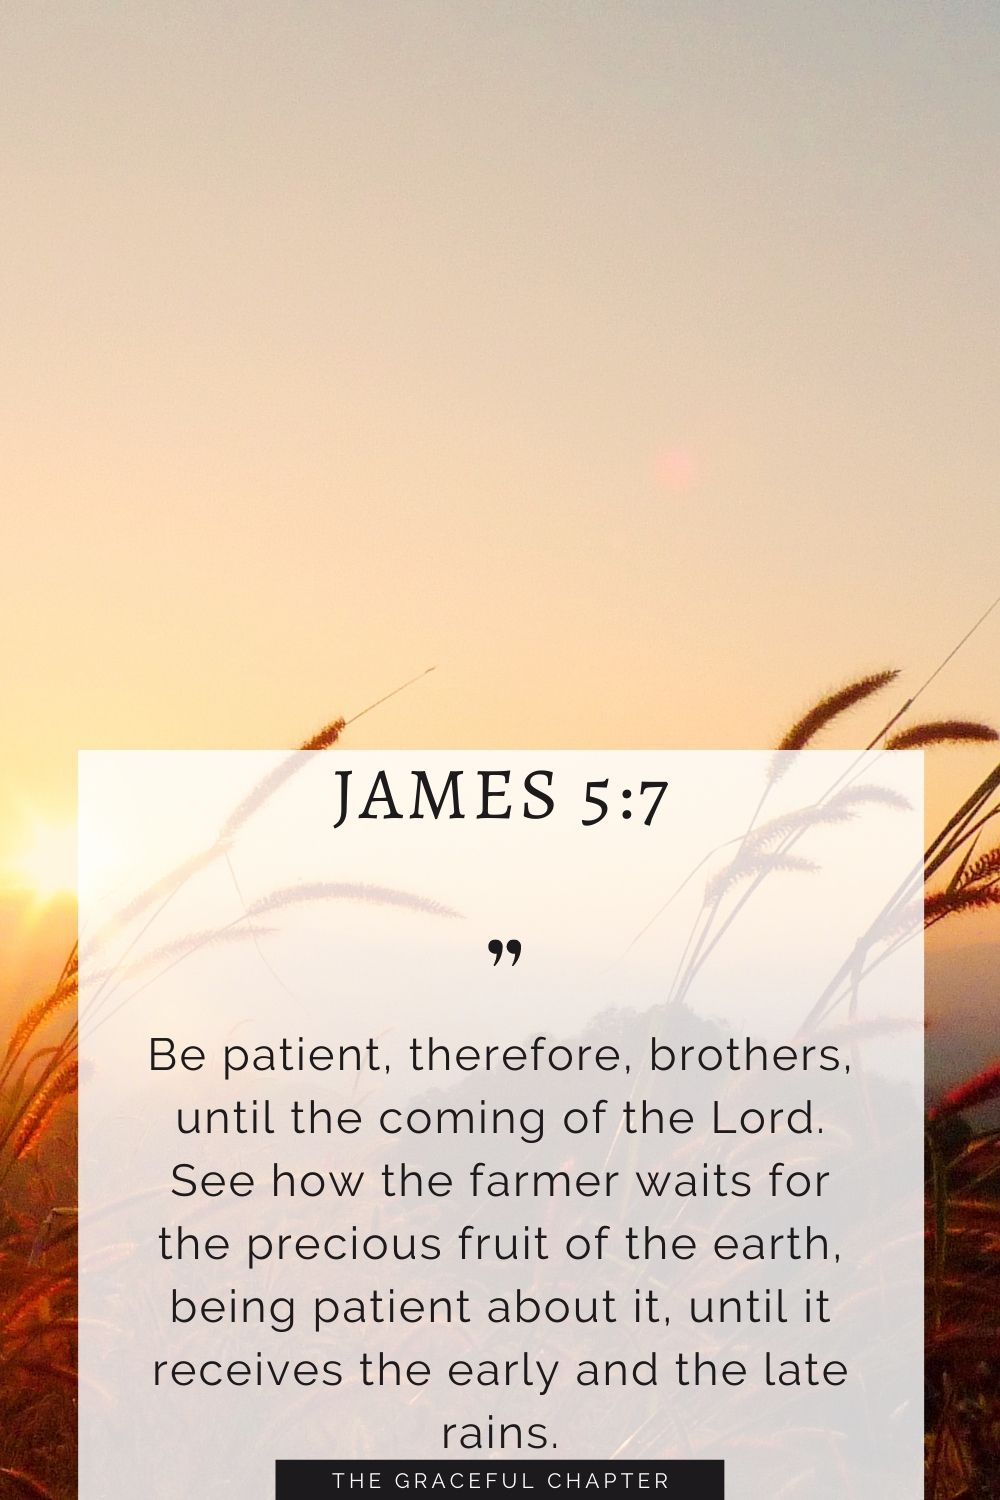 Be patient, therefore, brothers, until the coming of the Lord. See how the farmer waits for the precious fruit of the earth, being patient about it, until it receives the early and the late rains. James 5:7